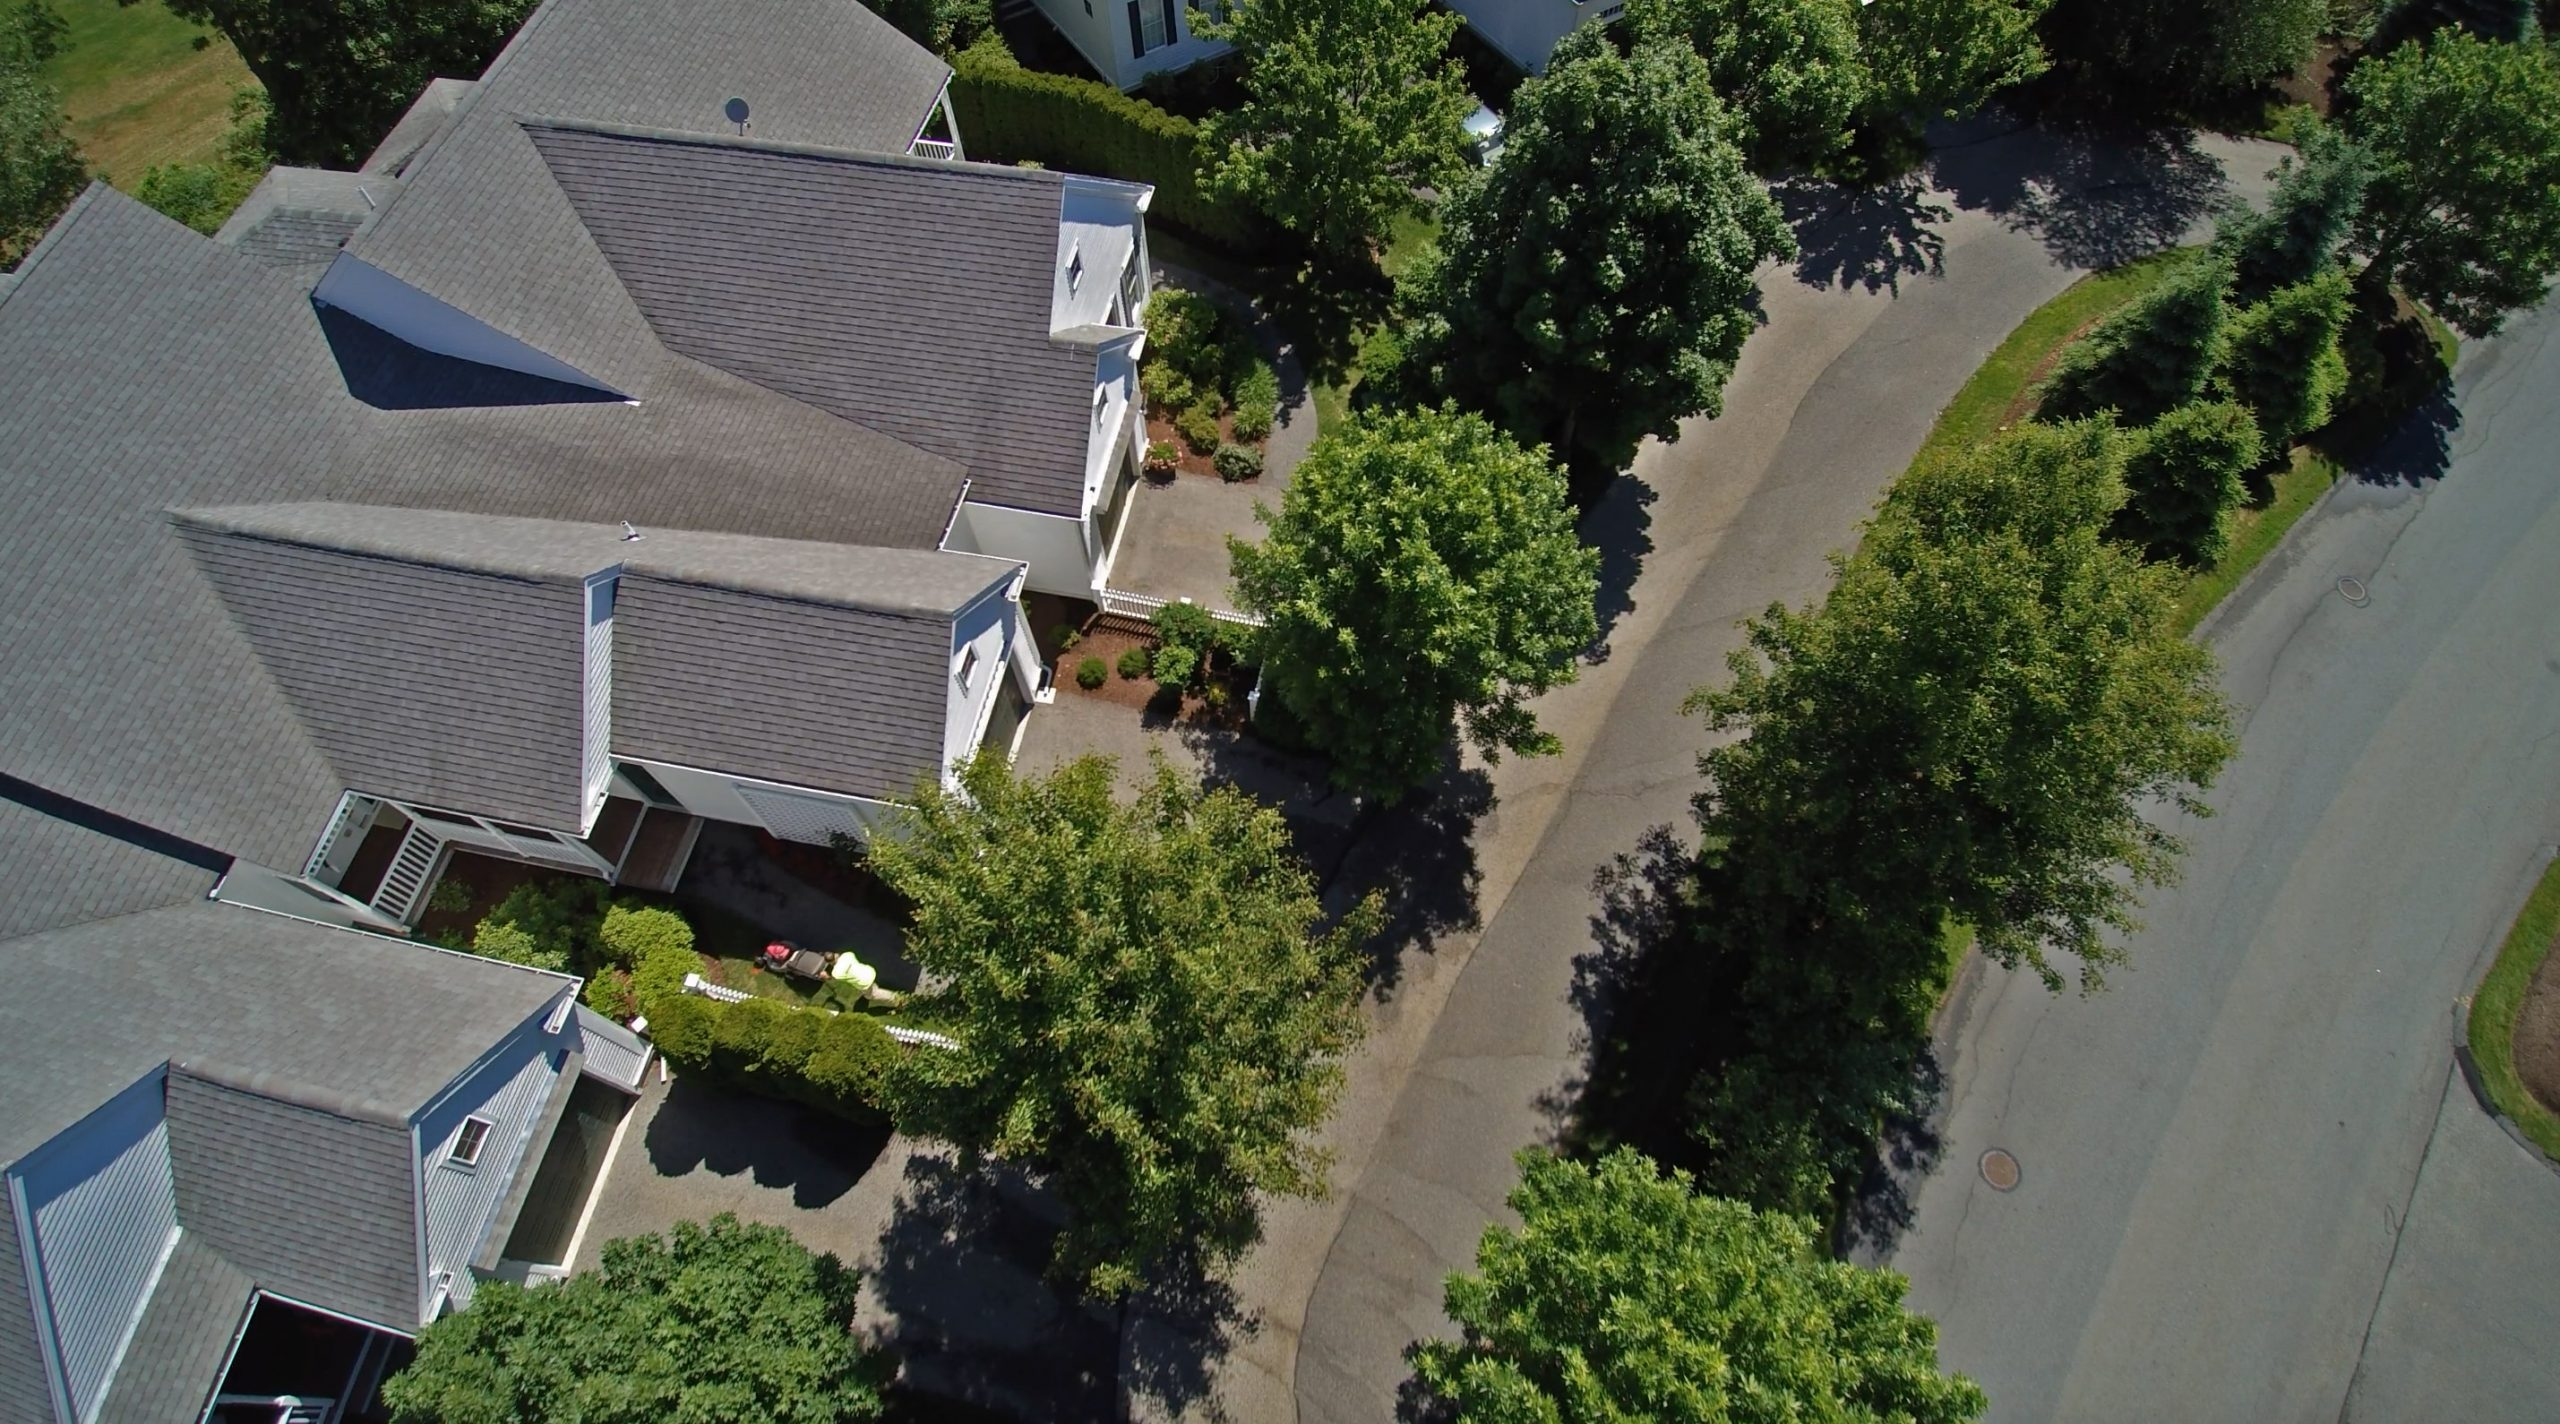 Overhead shot of Bourne condos taken with a drone.